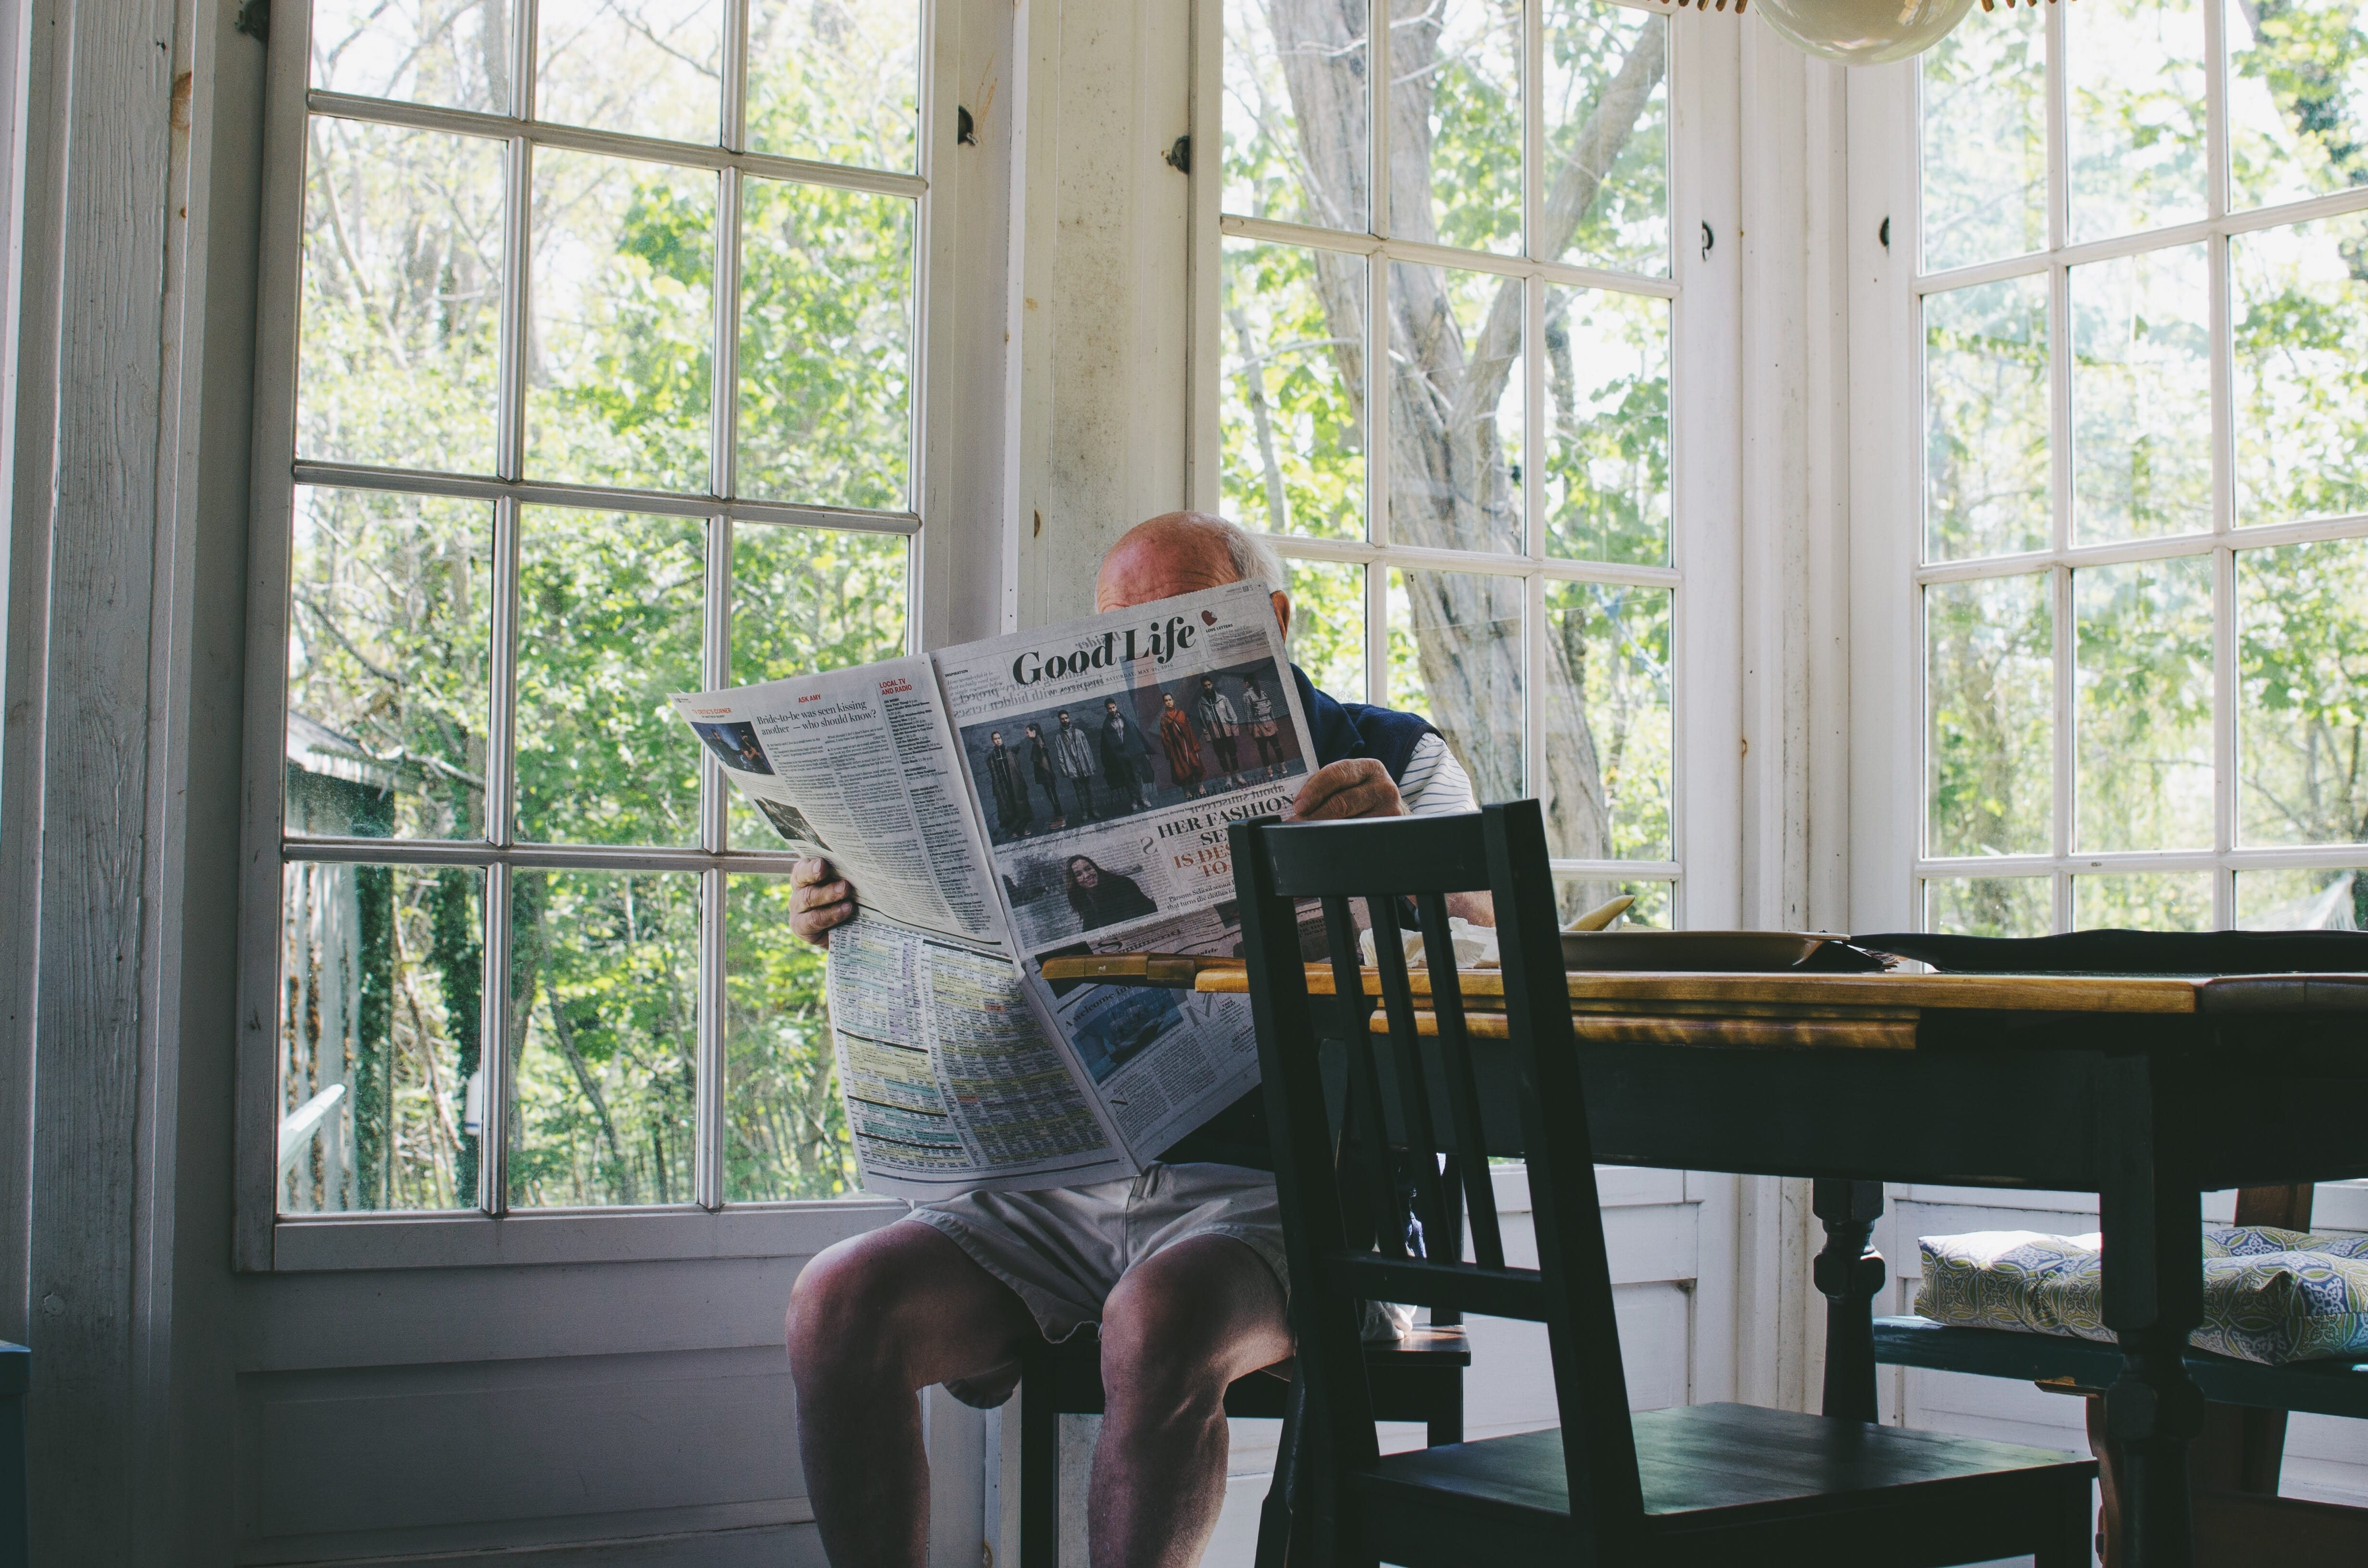 Man sitting at table reading newspaper; image by Sam Wheeler, via Unsplash.com.